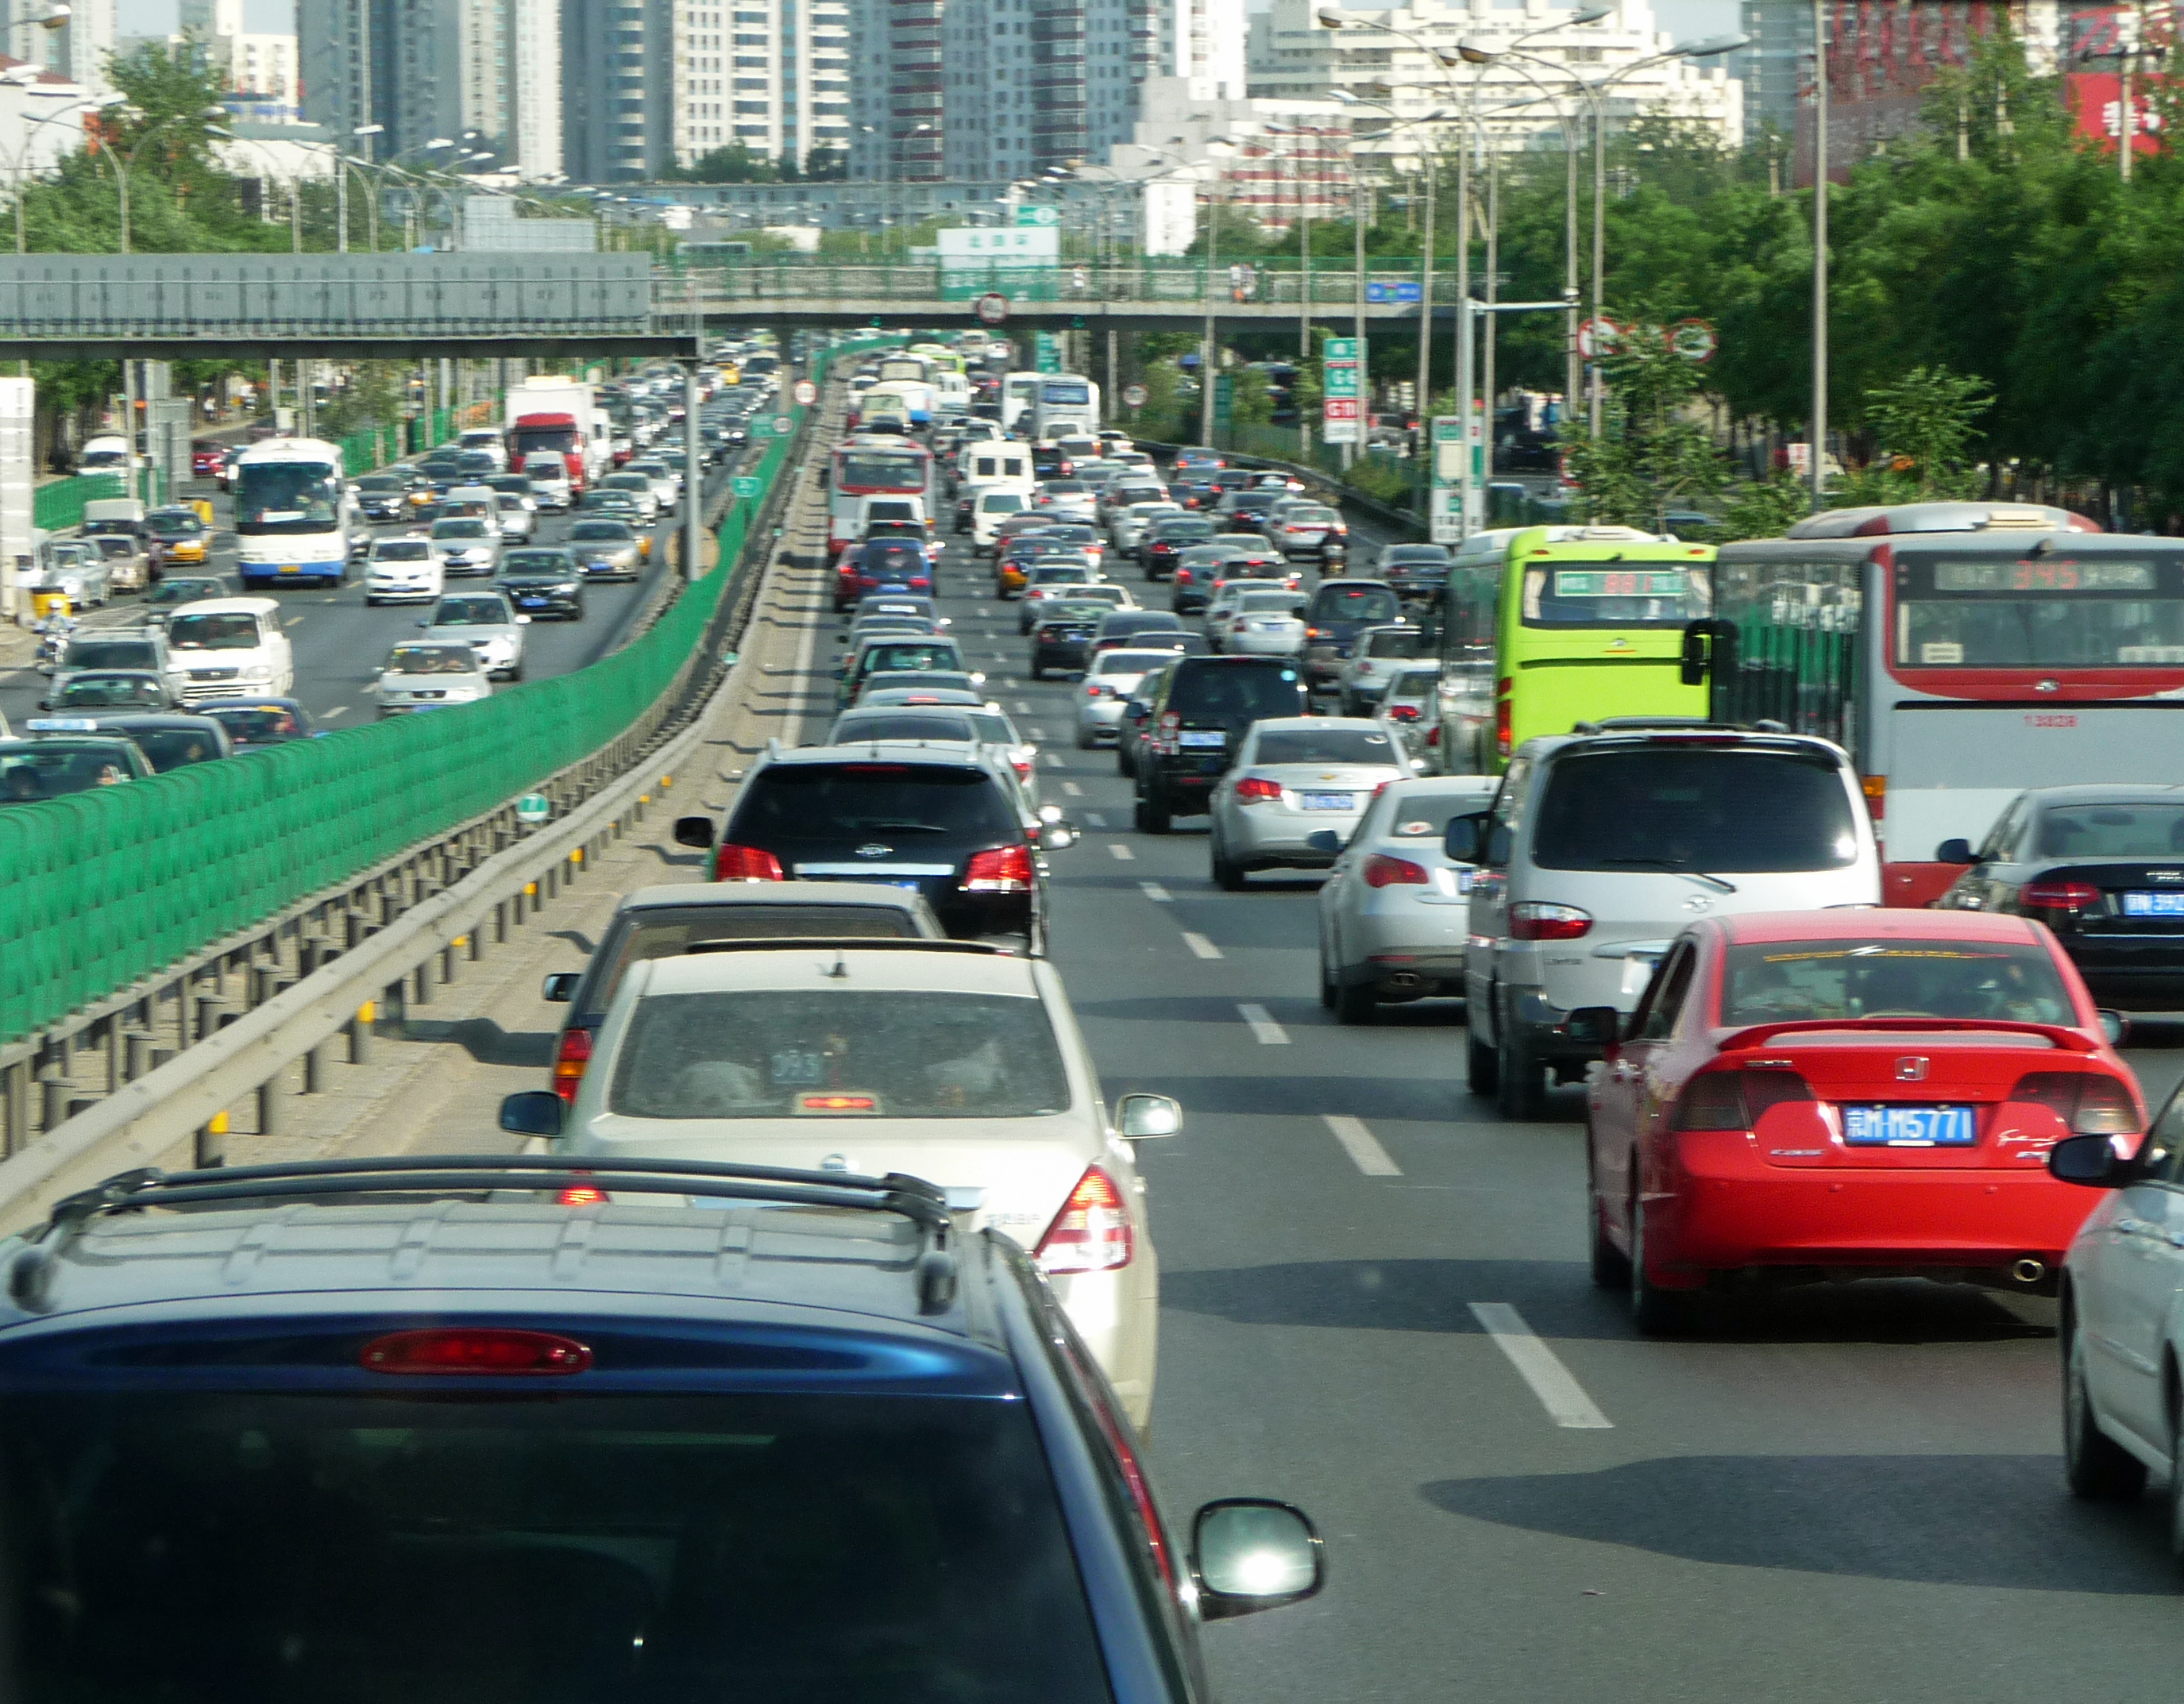 File:Beijing traffic jam.jpg - Wikimedia Commons Traffic